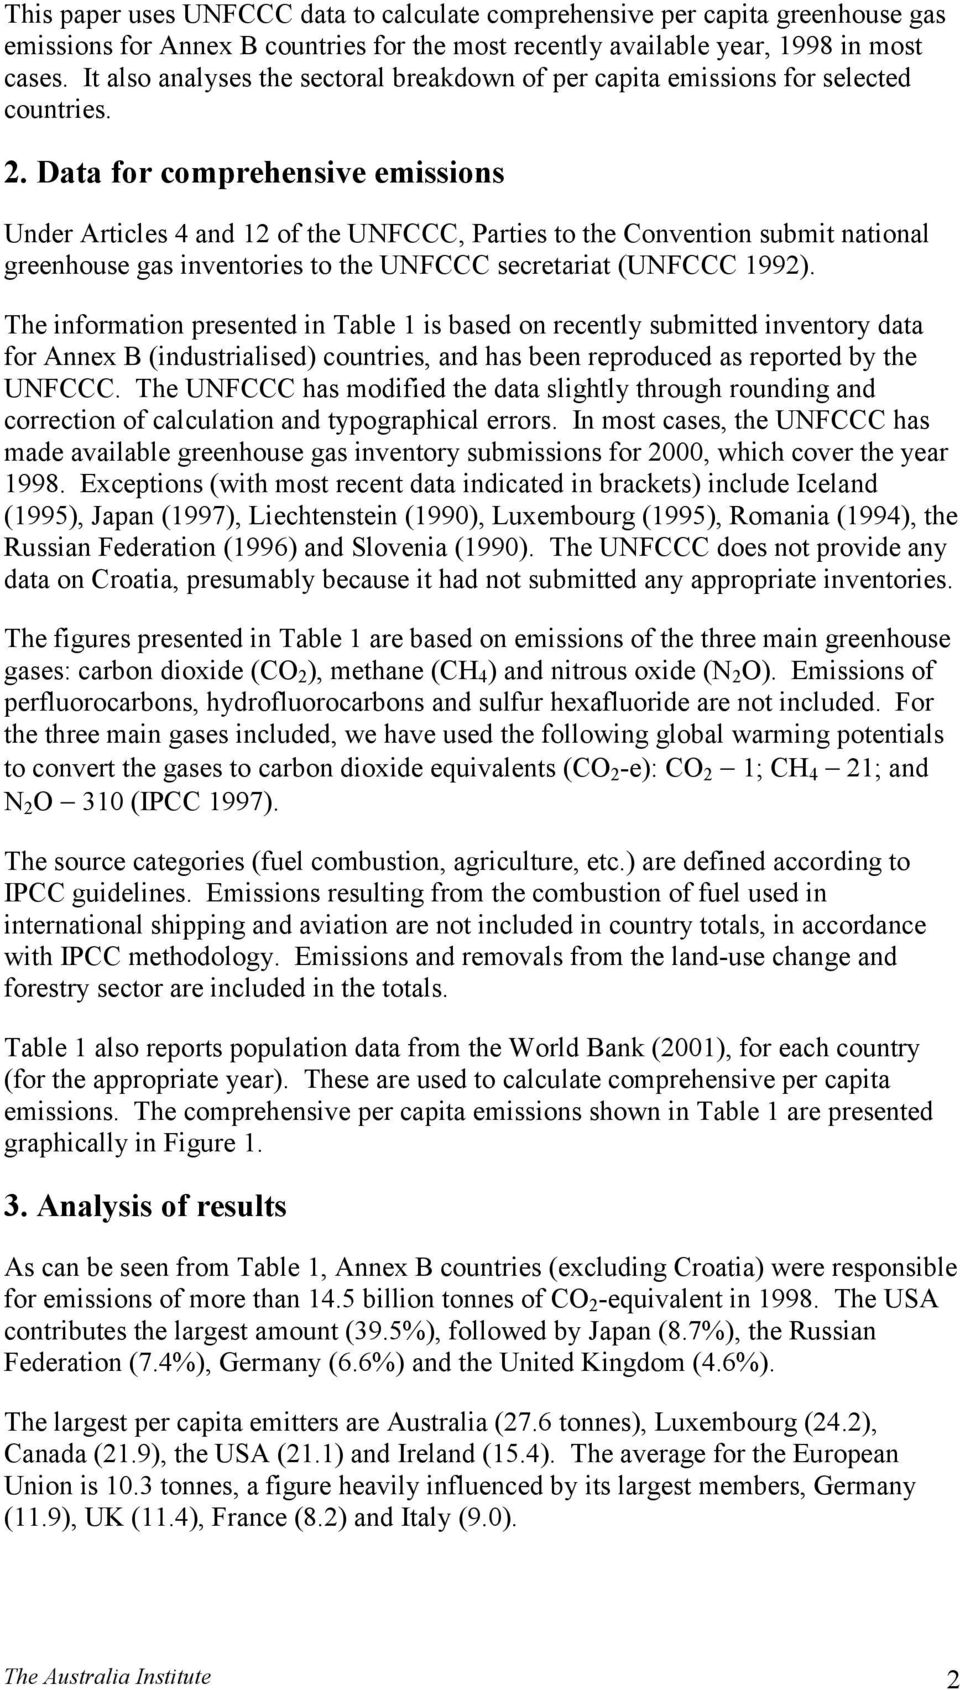 Data for comprehensive emissions Under Articles 4 and 12 of the UNFCCC, Parties to the Convention submit national greenhouse gas inventories to the UNFCCC secretariat (UNFCCC 1992).